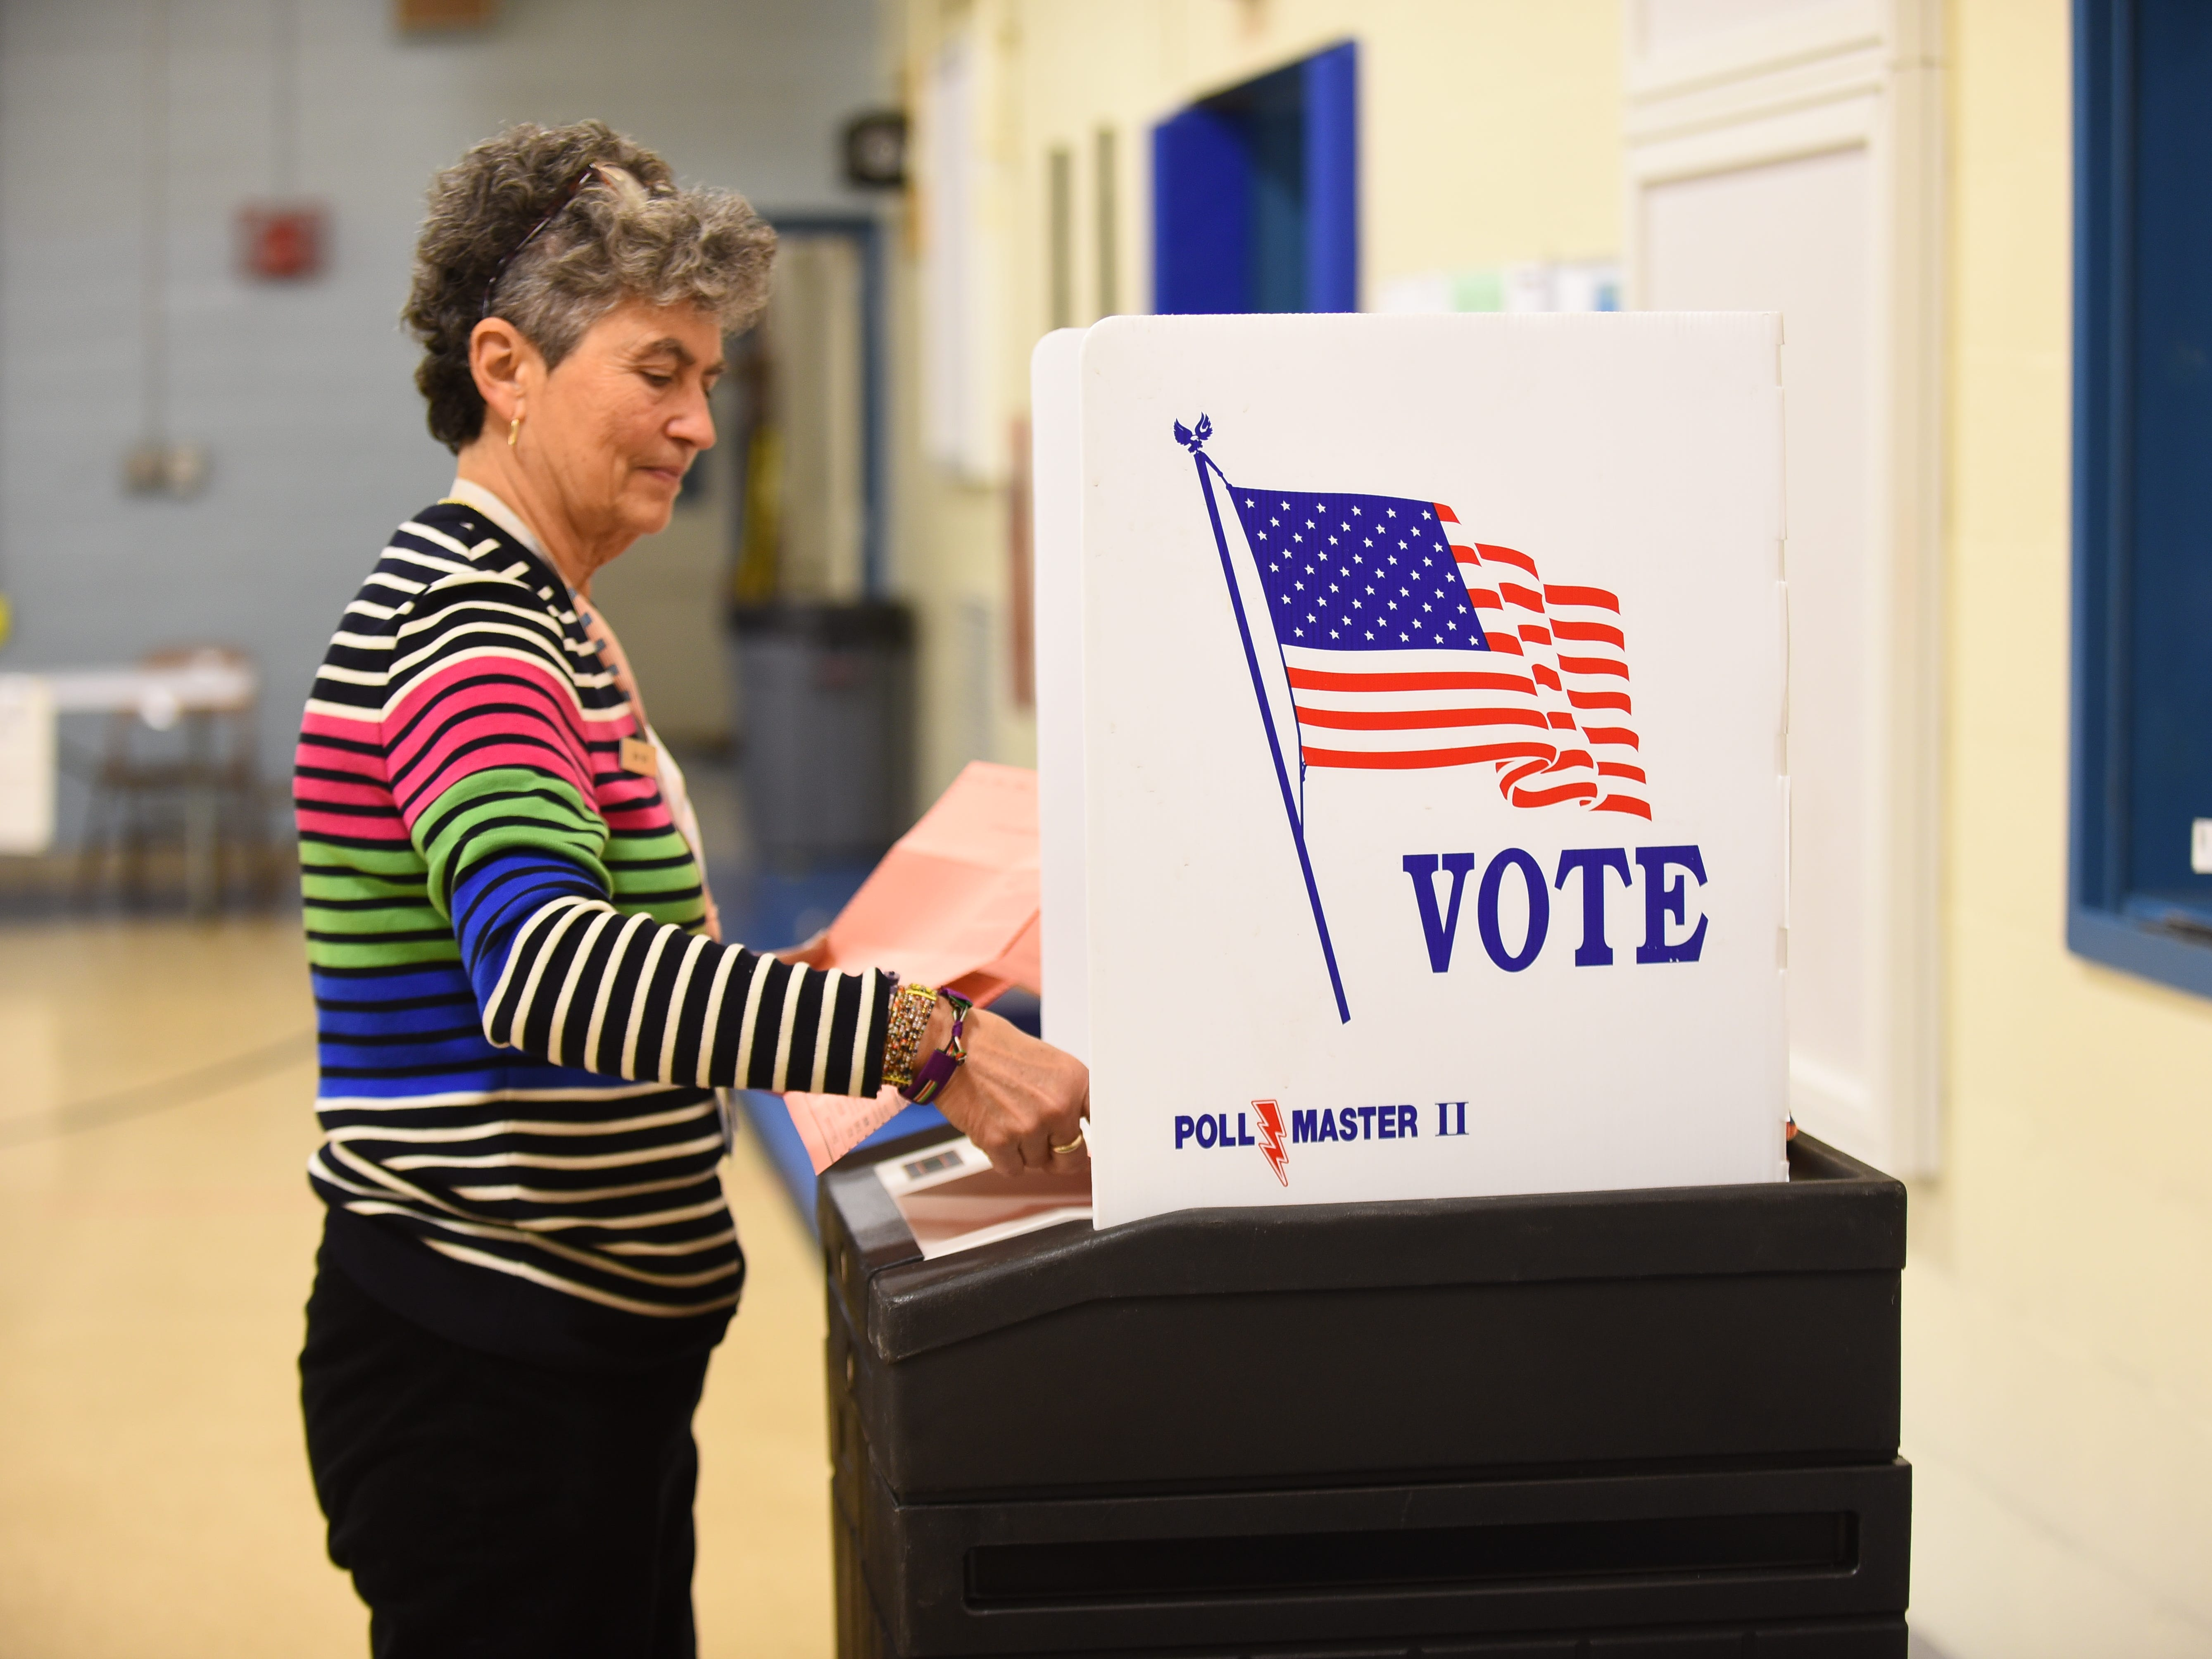 Lynn Vera, a member of the South Burlington Board of Civil Authority, enters mailed-in ballots into the counting machine on Town Meeting Day, Tuesday March 5, 2019, at Orchard School in South Burlington.